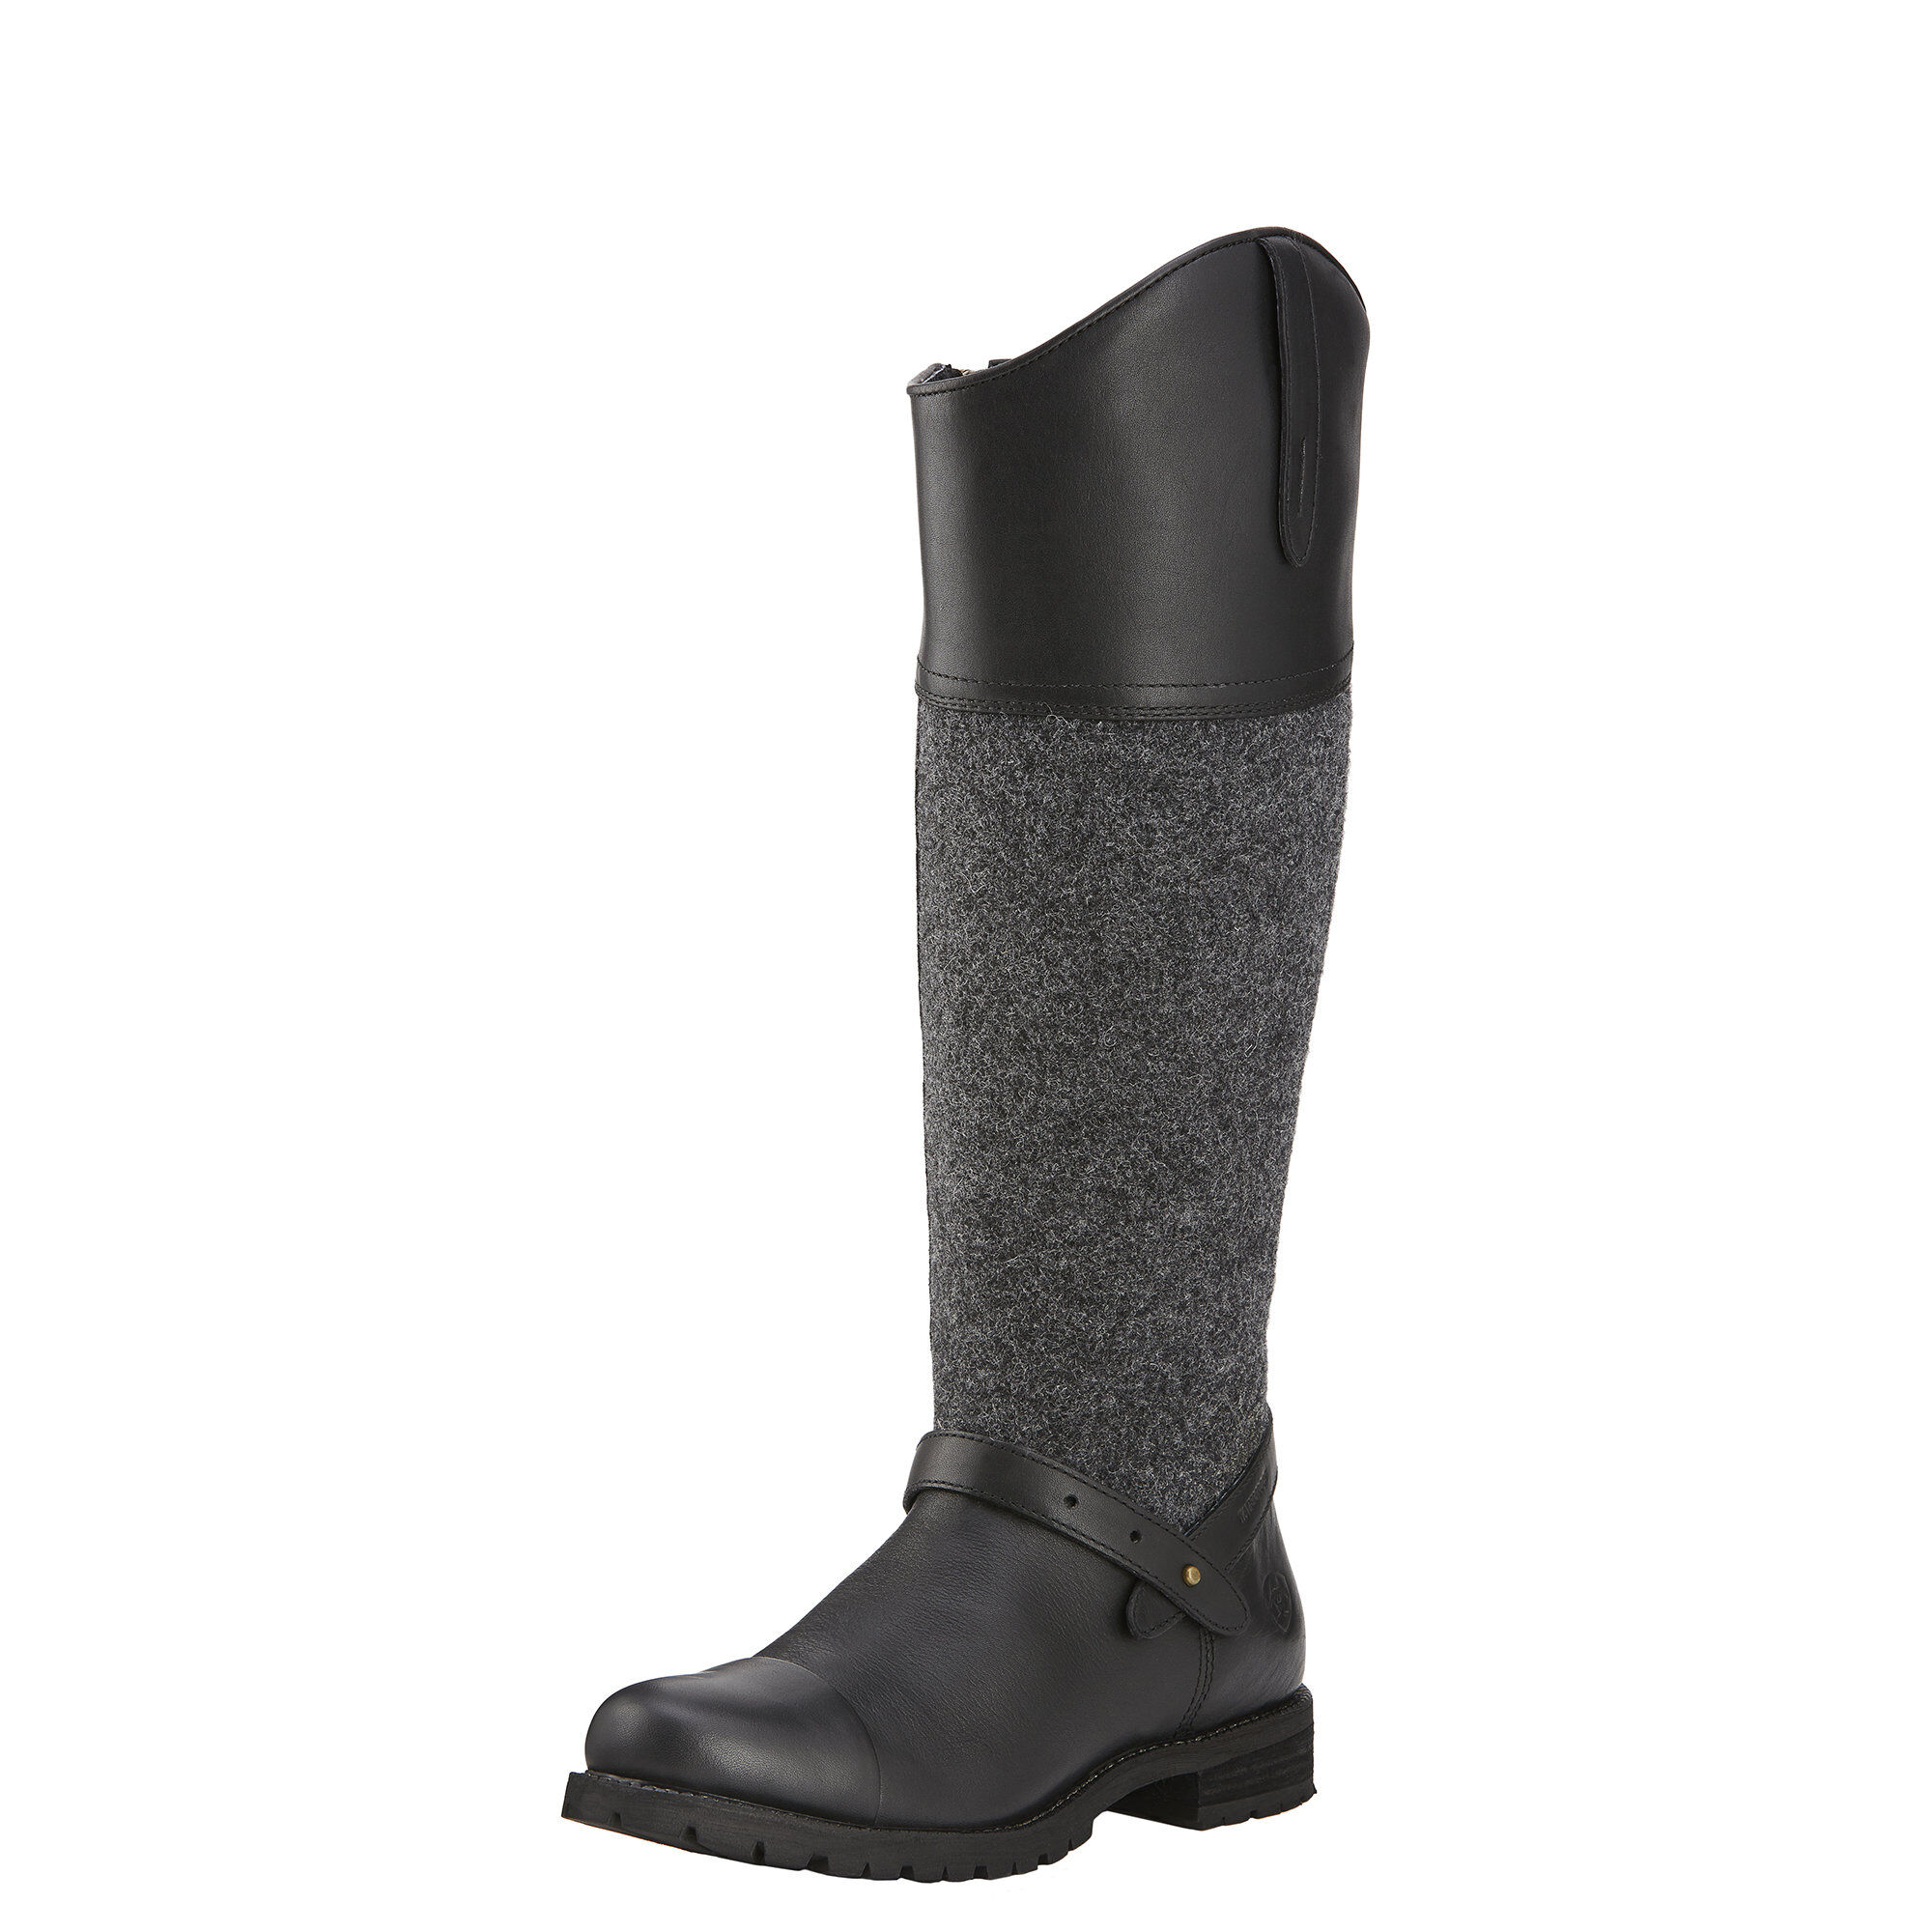 Sherborne Waterproof